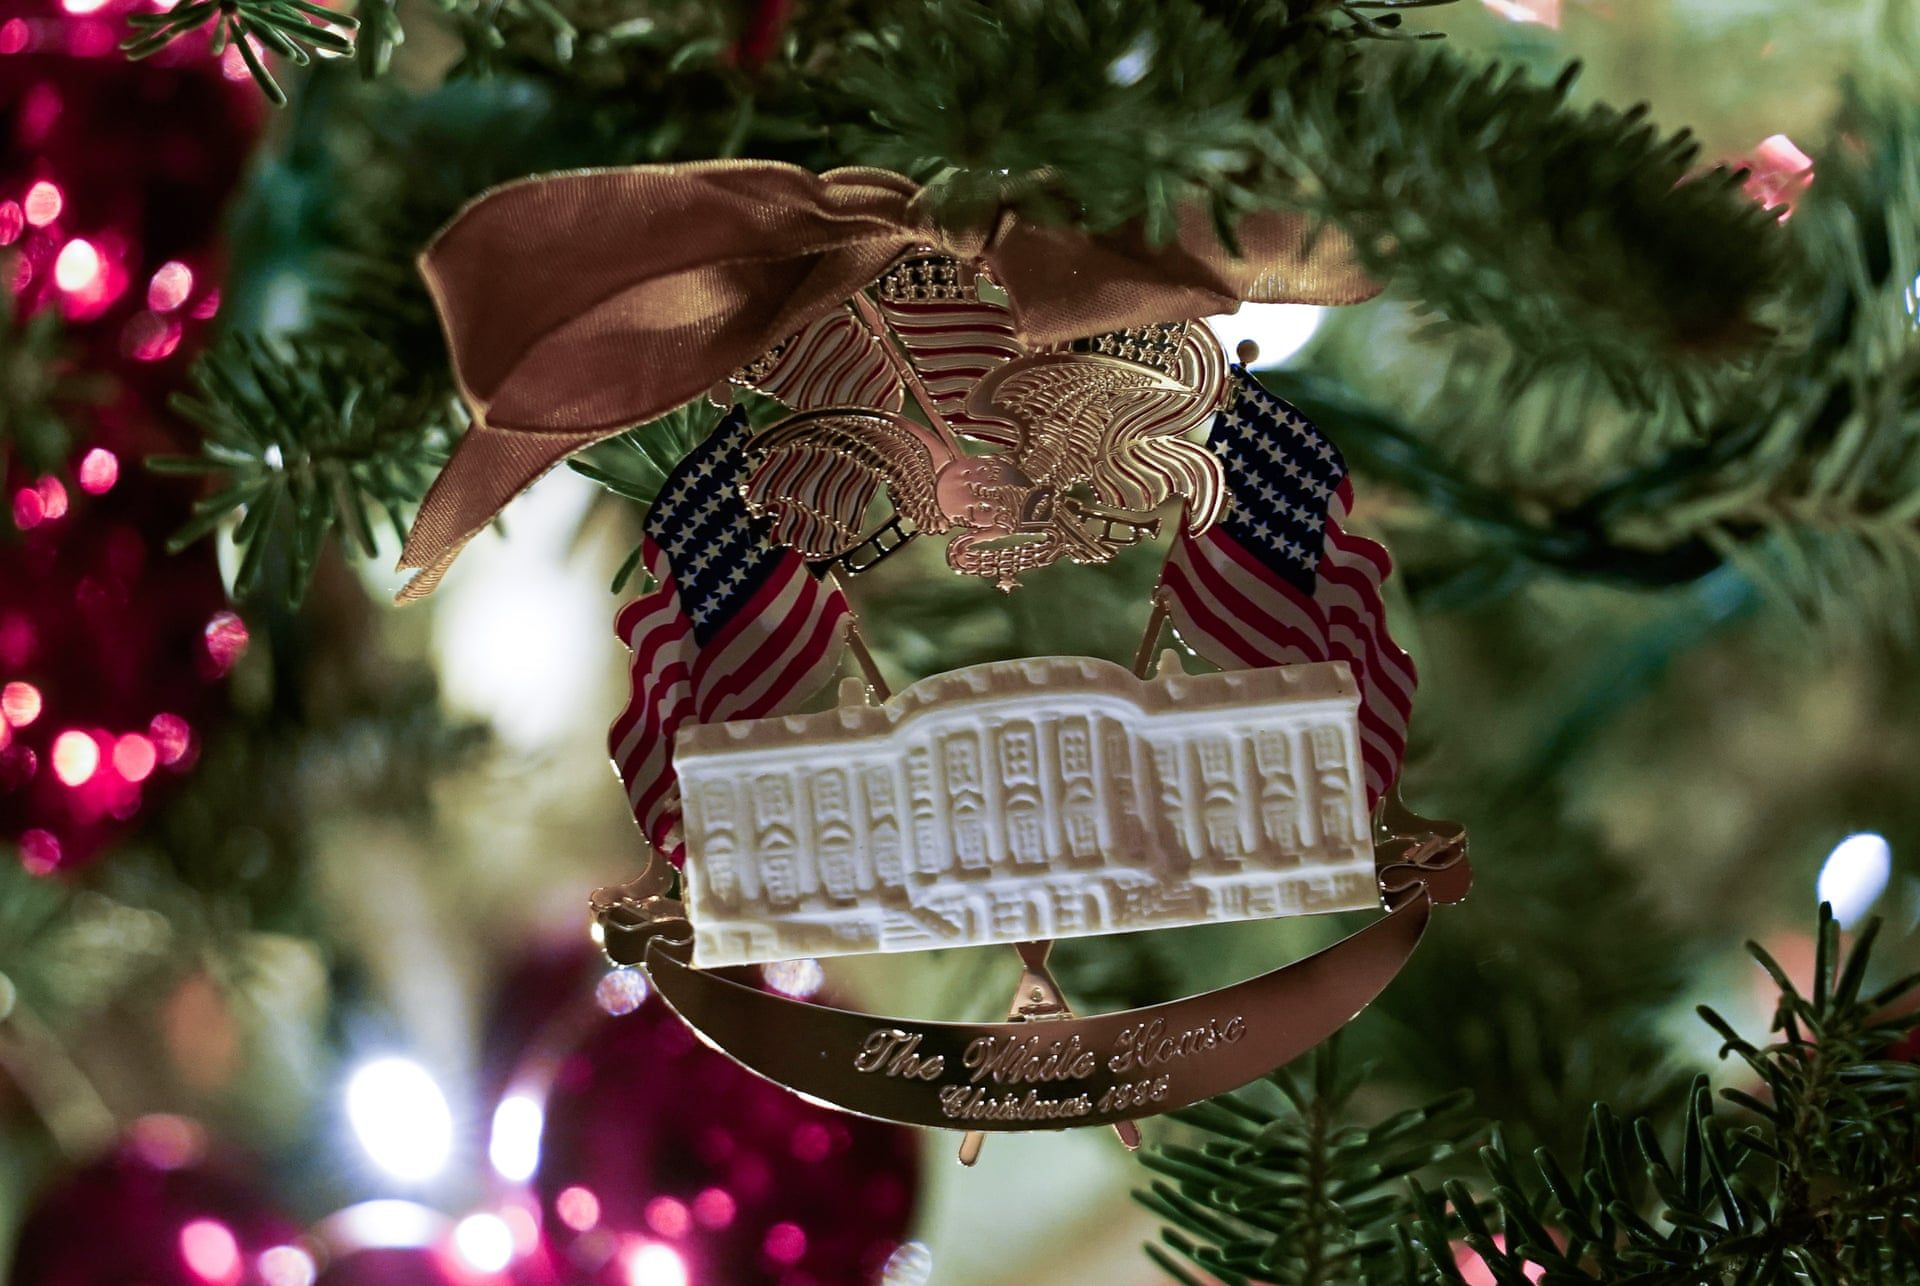 The White House S 2019 Christmas Decorations In Pictures Christmas Decorations White House Christmas Tree Christmas